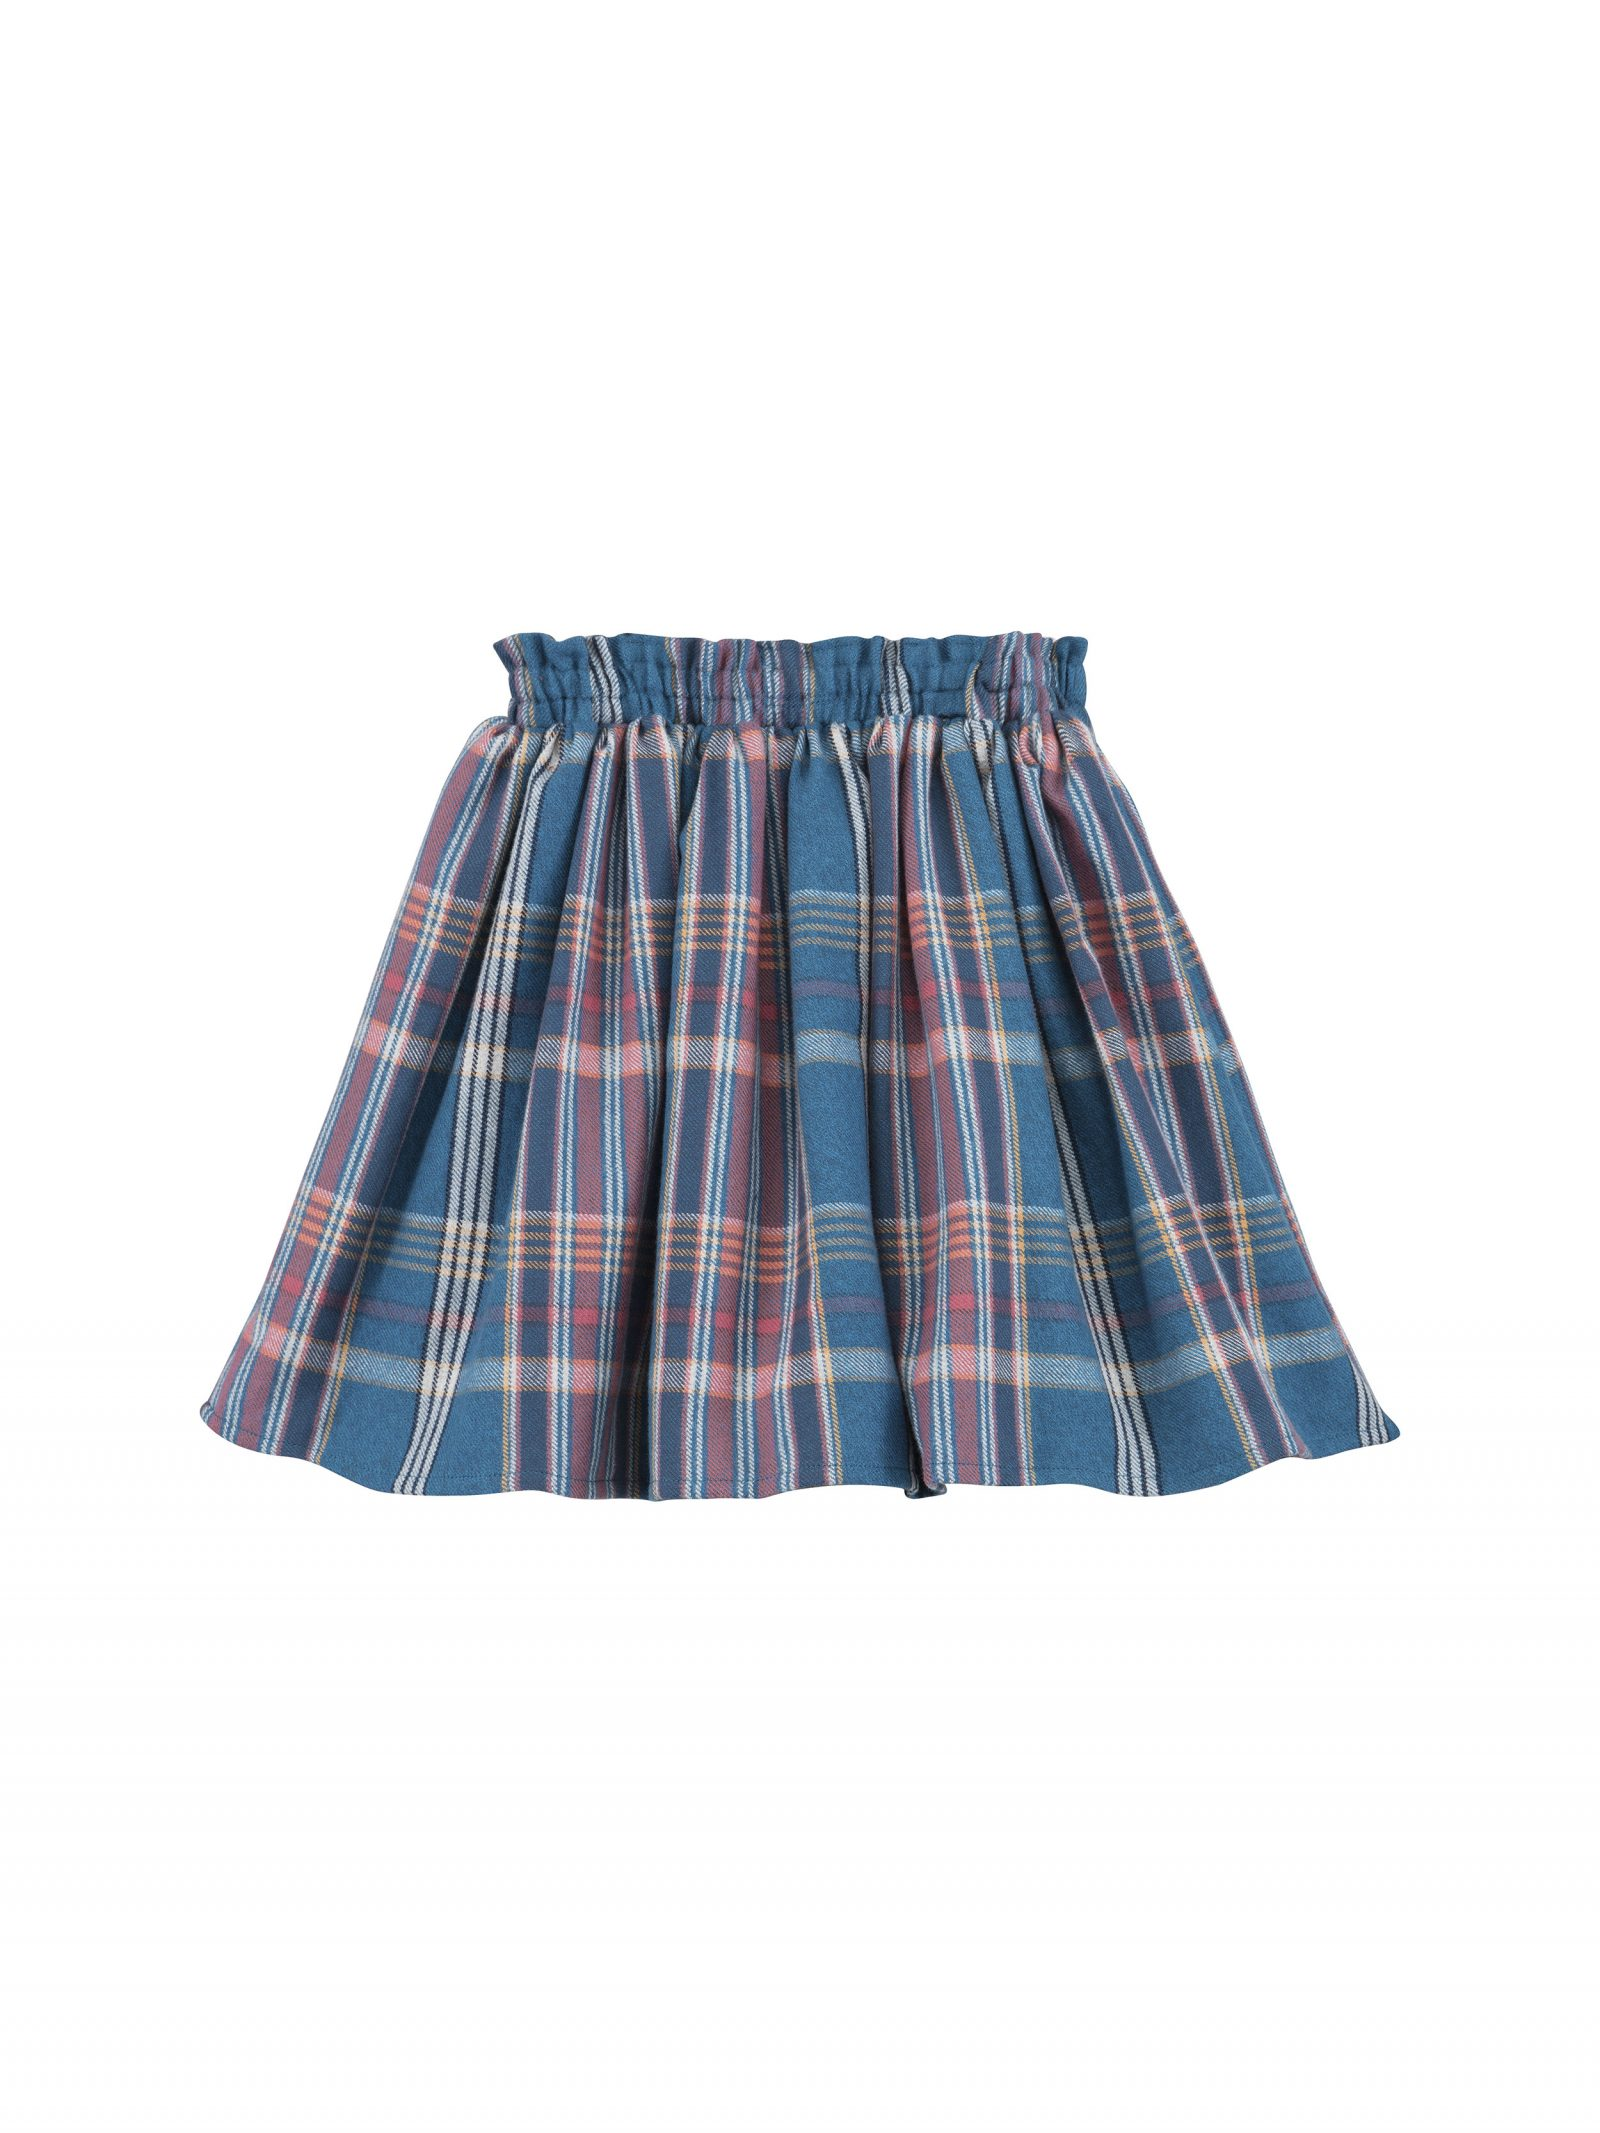 Joanna Plaid Skirt in Teal - Back